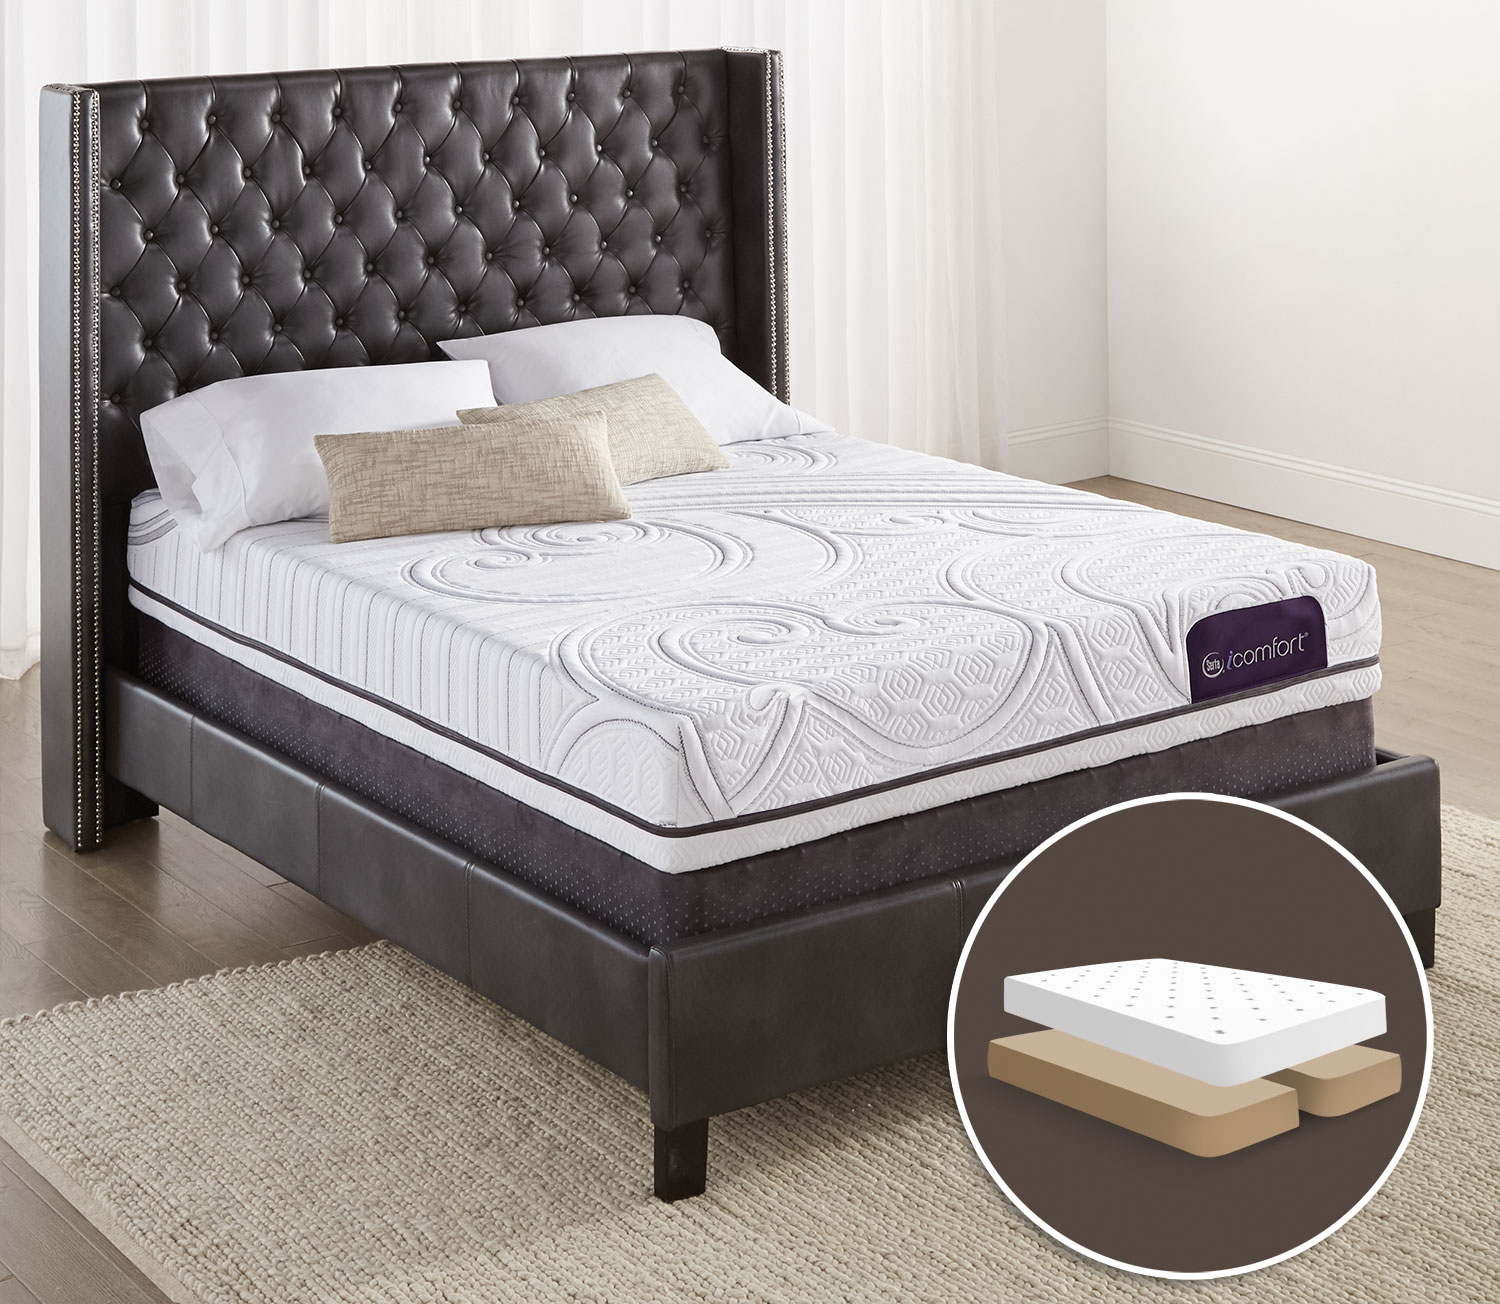 Serta iComfort Aura 2 Firm Queen Mattress with Split Boxspring Set